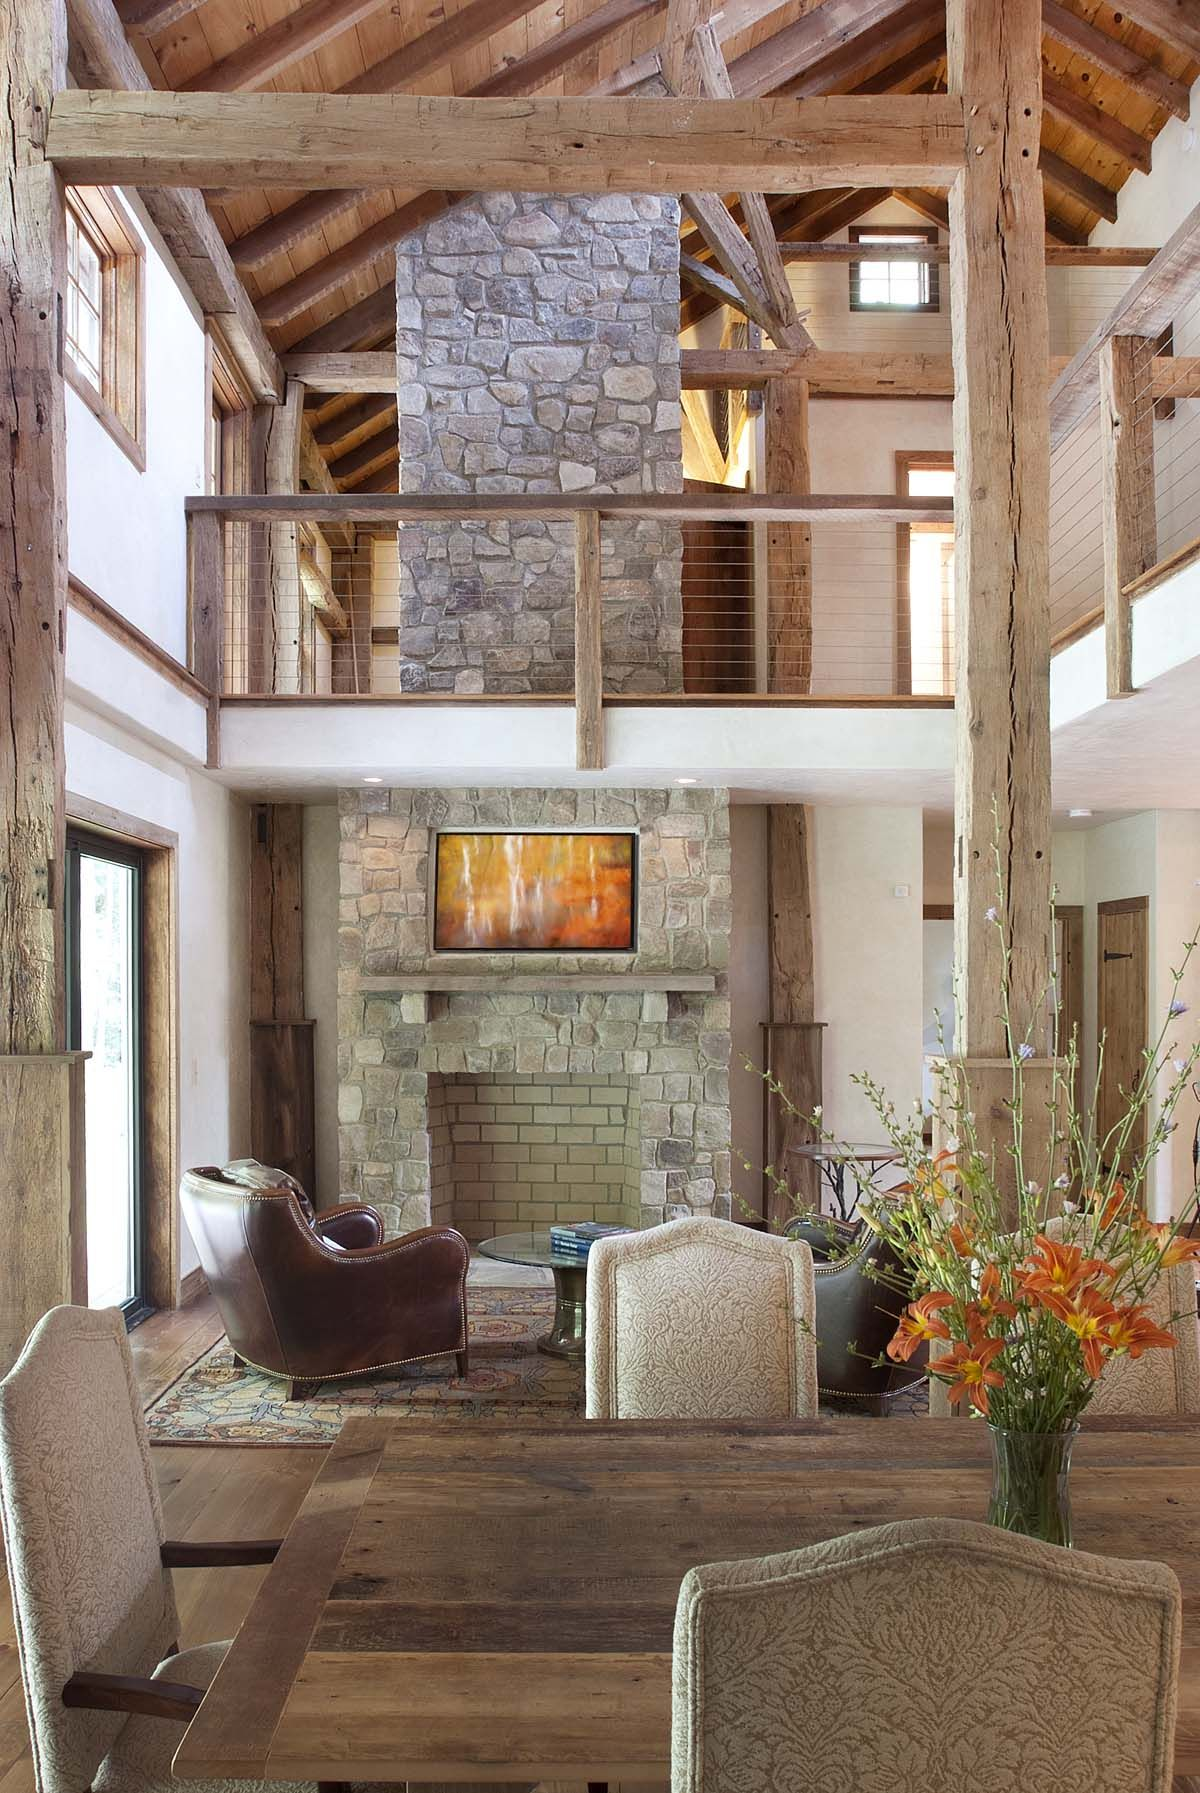 Fireplace Ideas: From Traditional to Modern and More ...